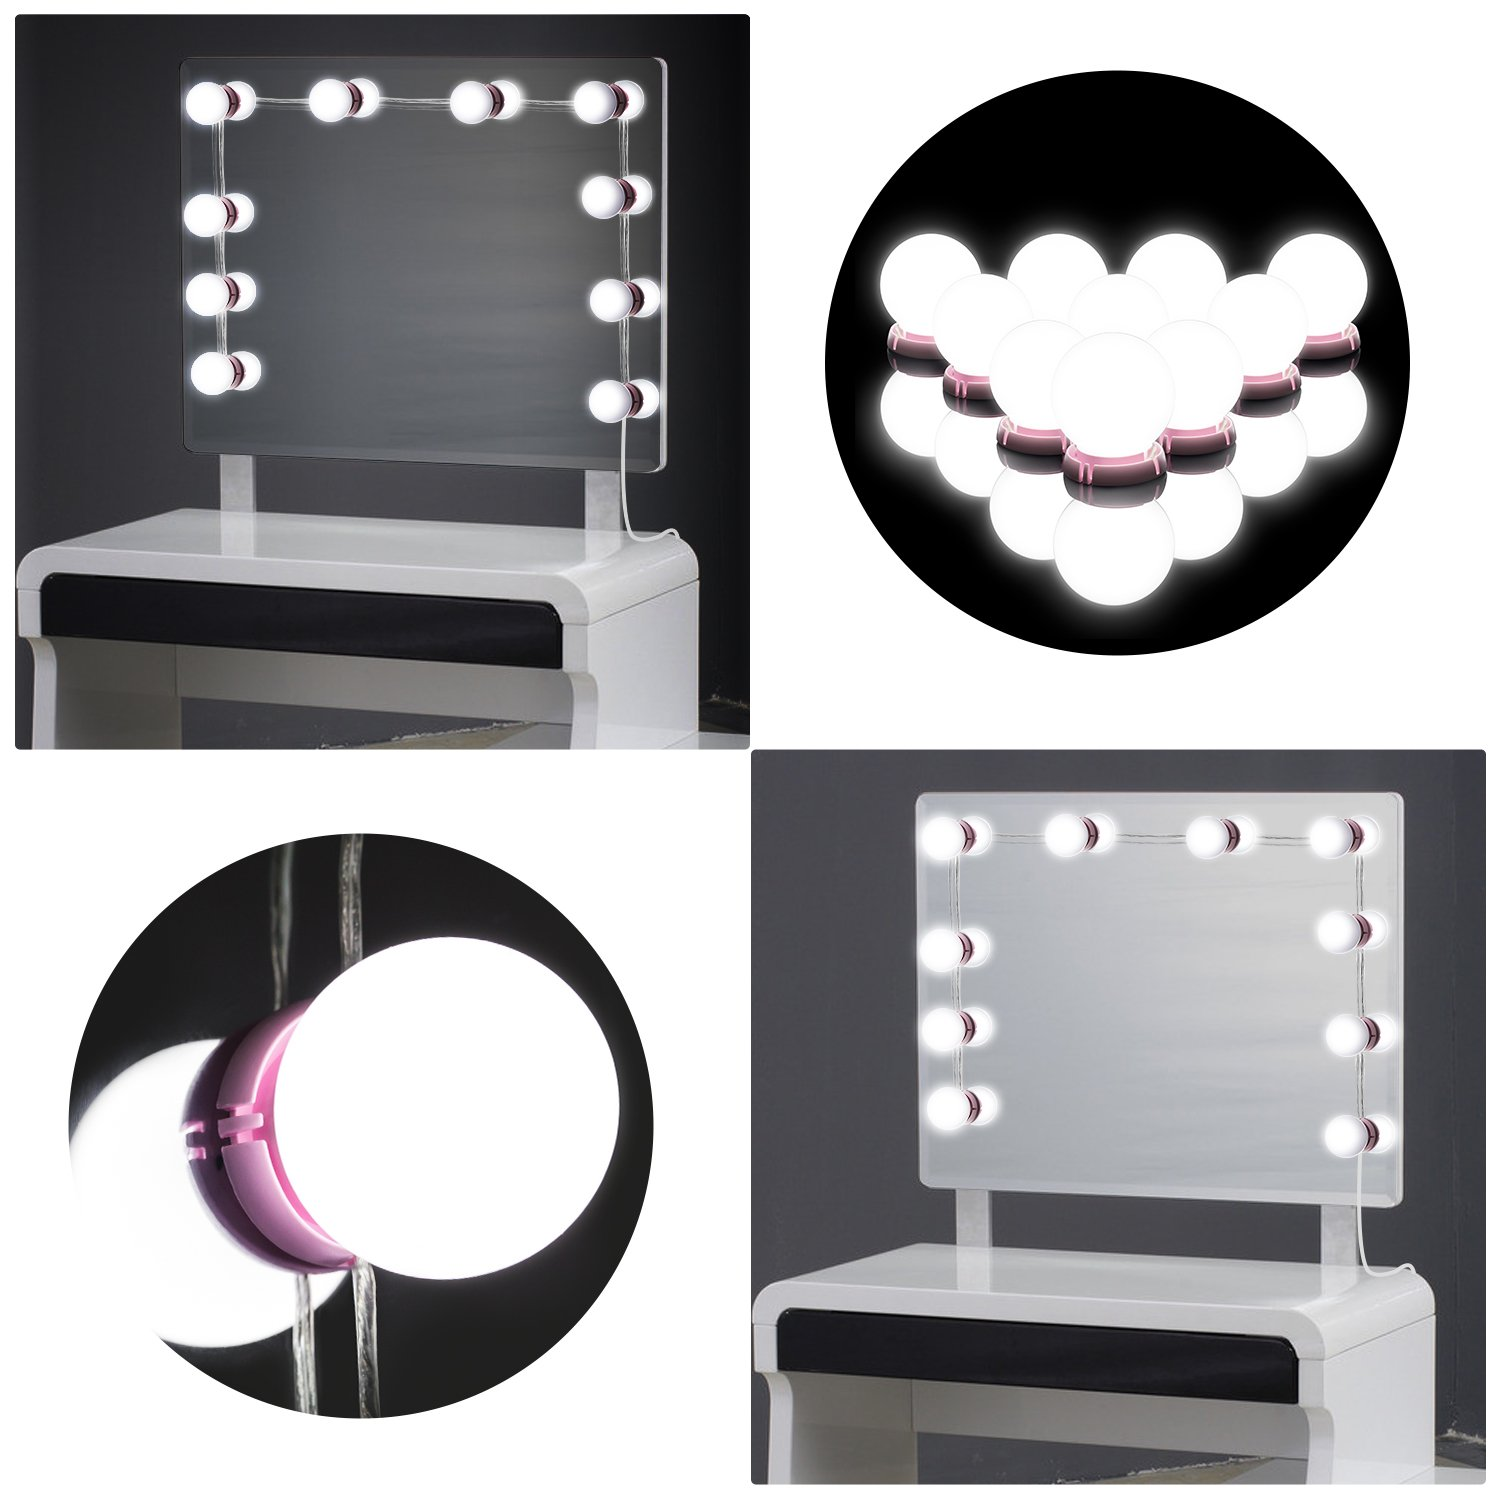 Led Vanity Lights, Hollywood Style LED Makeup Lights kit with Dimmable Light Bulbs, TIME Whale Song LED Lighting Fixture Strip for Makeup Dressing Table (Mirror Not Included) (White)